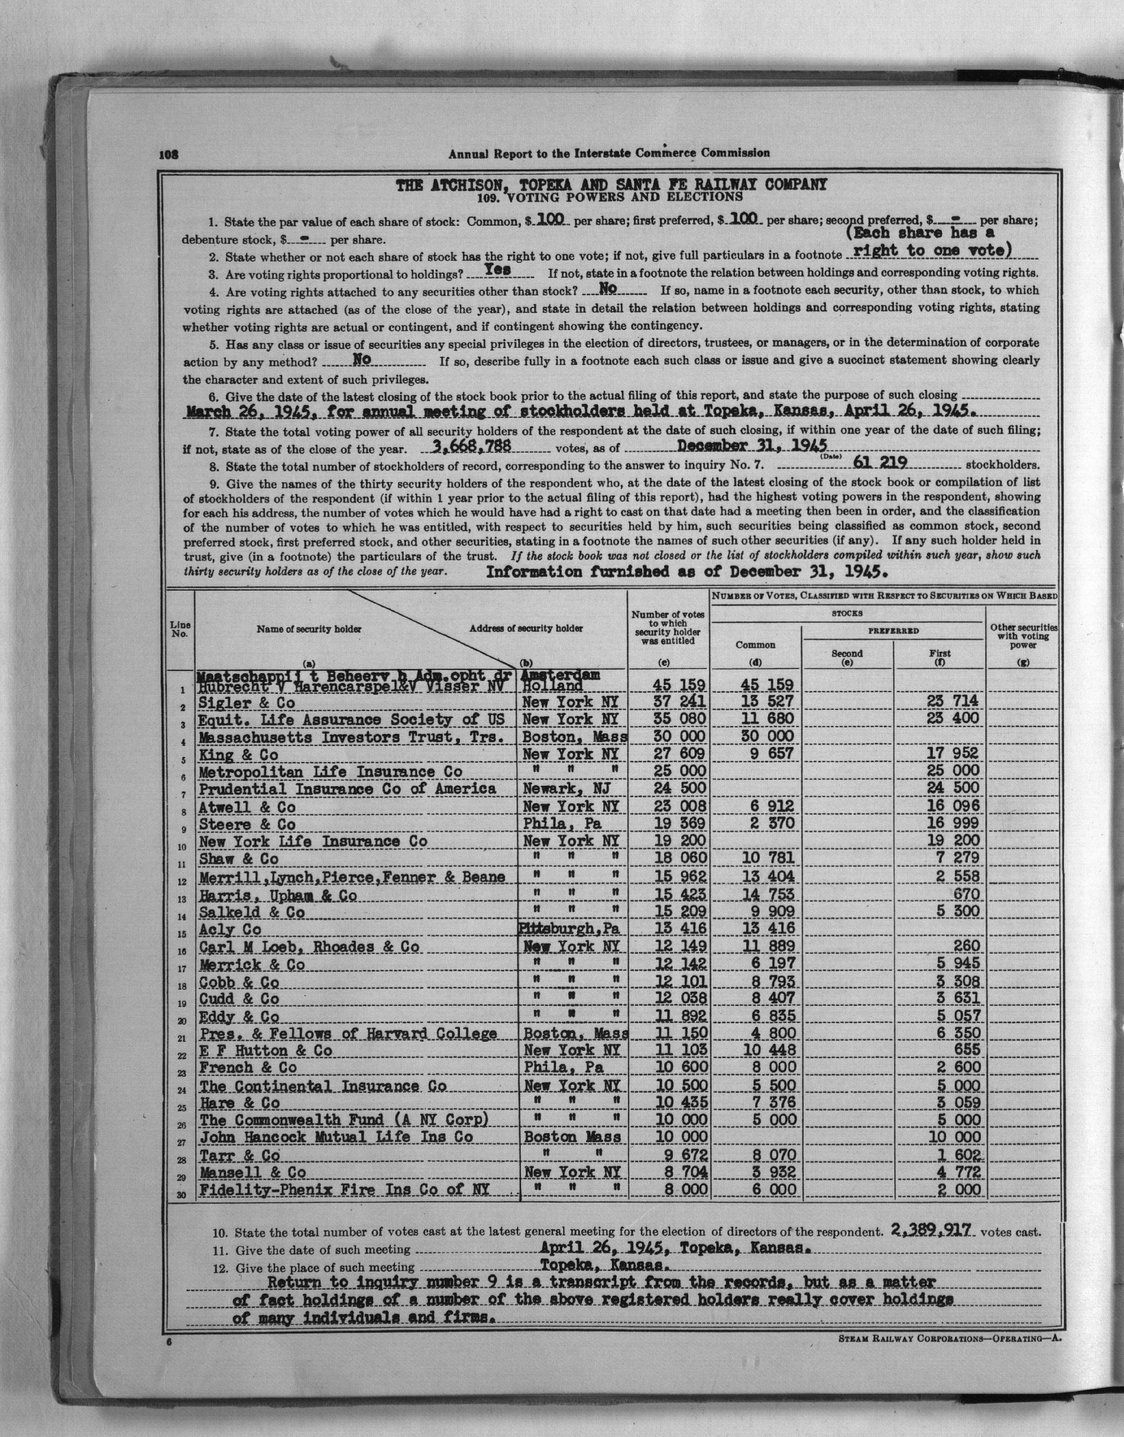 Annual reports of the Atchison, Topeka & Santa Fe Railway Company to the State Corporation Commission - 6 - 108